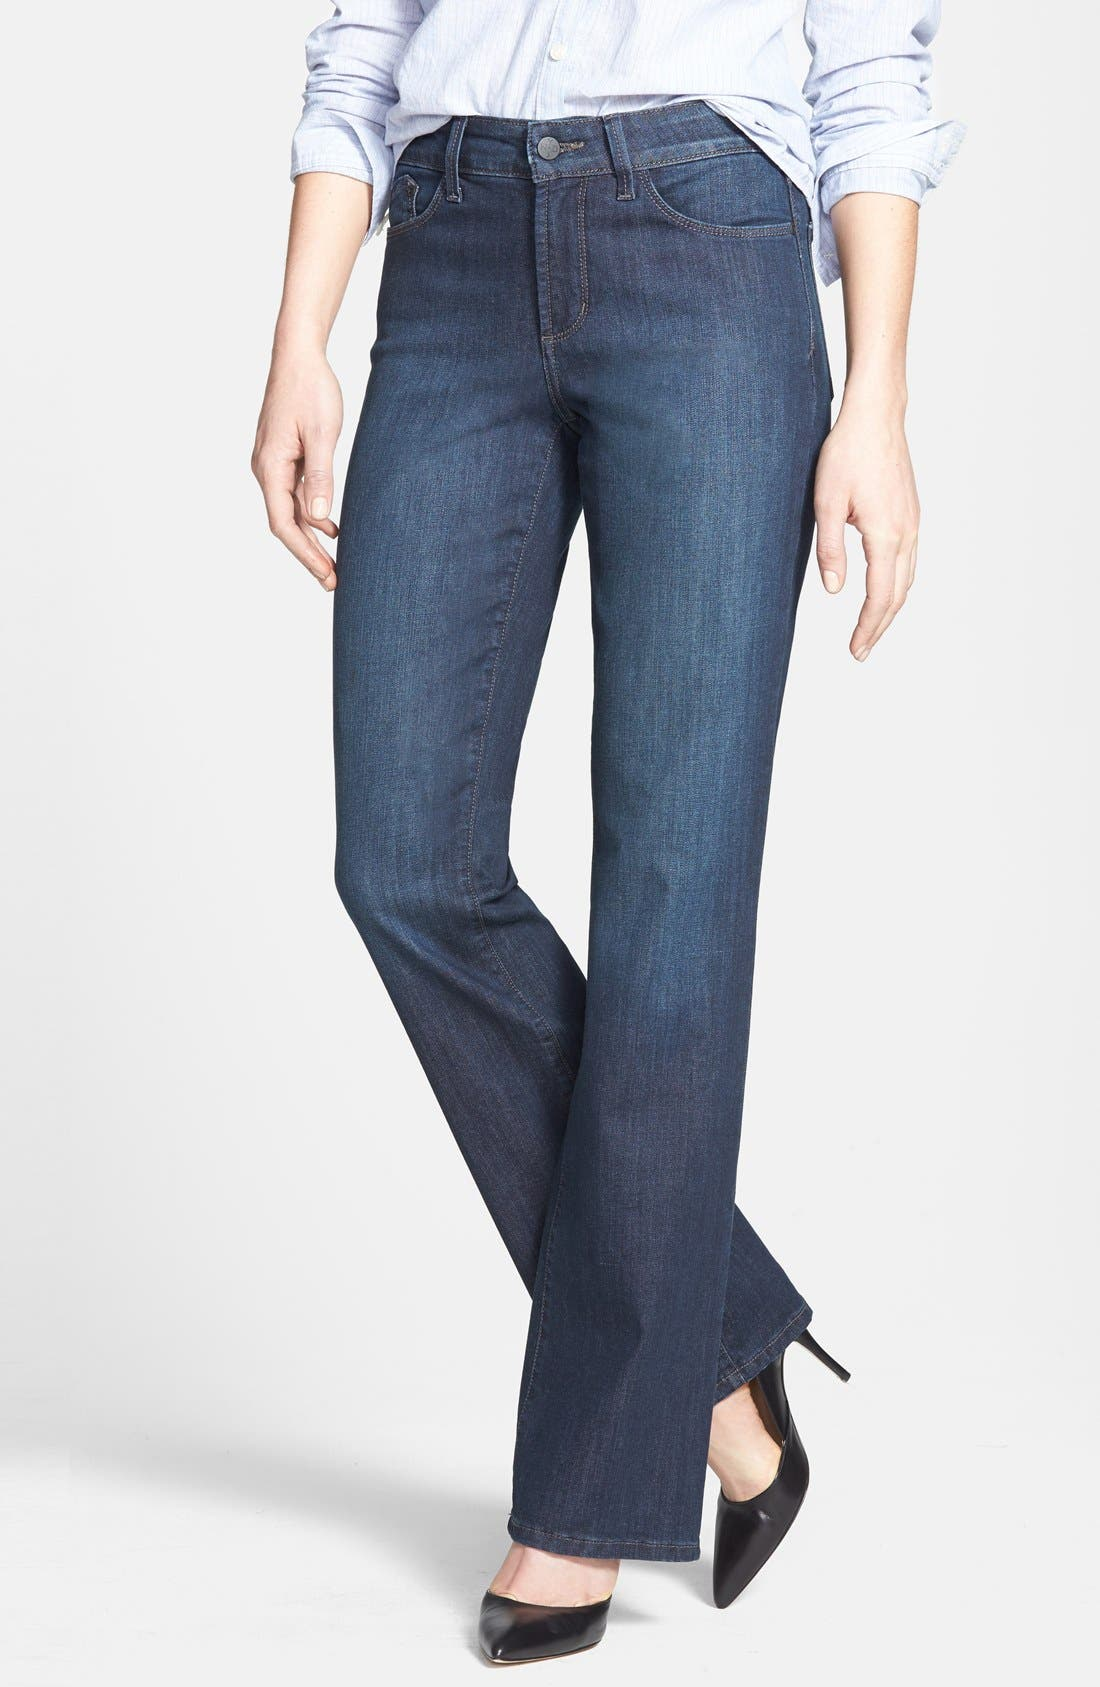 Main Image - NYDJ 'Barbara' Stretch Bootcut Jeans (Harrington) (Petite)